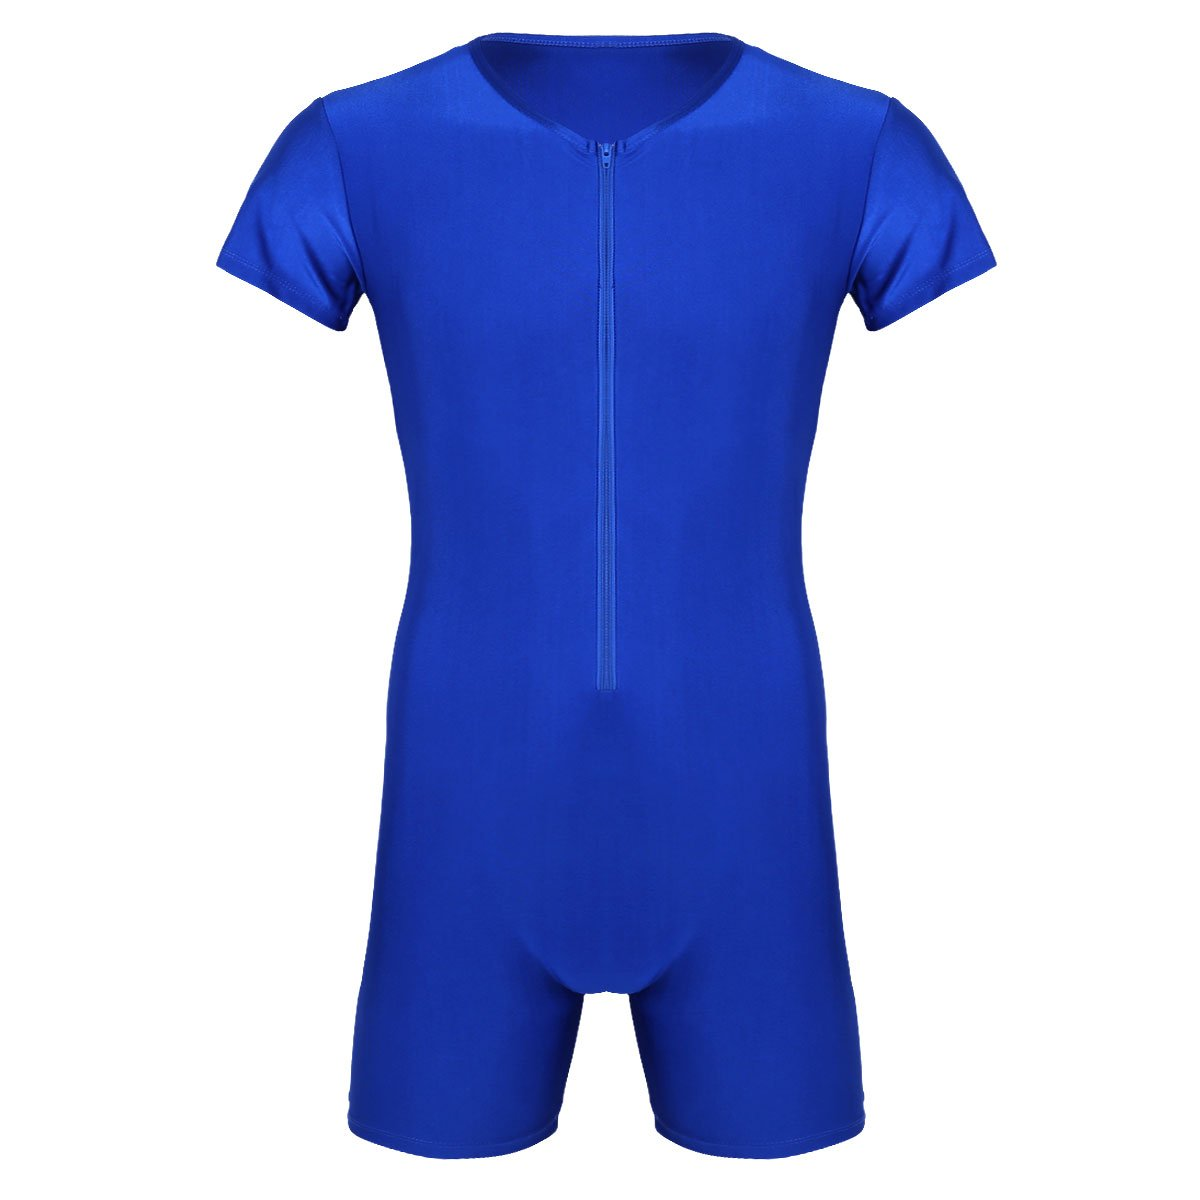 CHICTRY Men's Short Sleeve Zipper Front Gym Workout Undershirt Romper Overall Blue Large